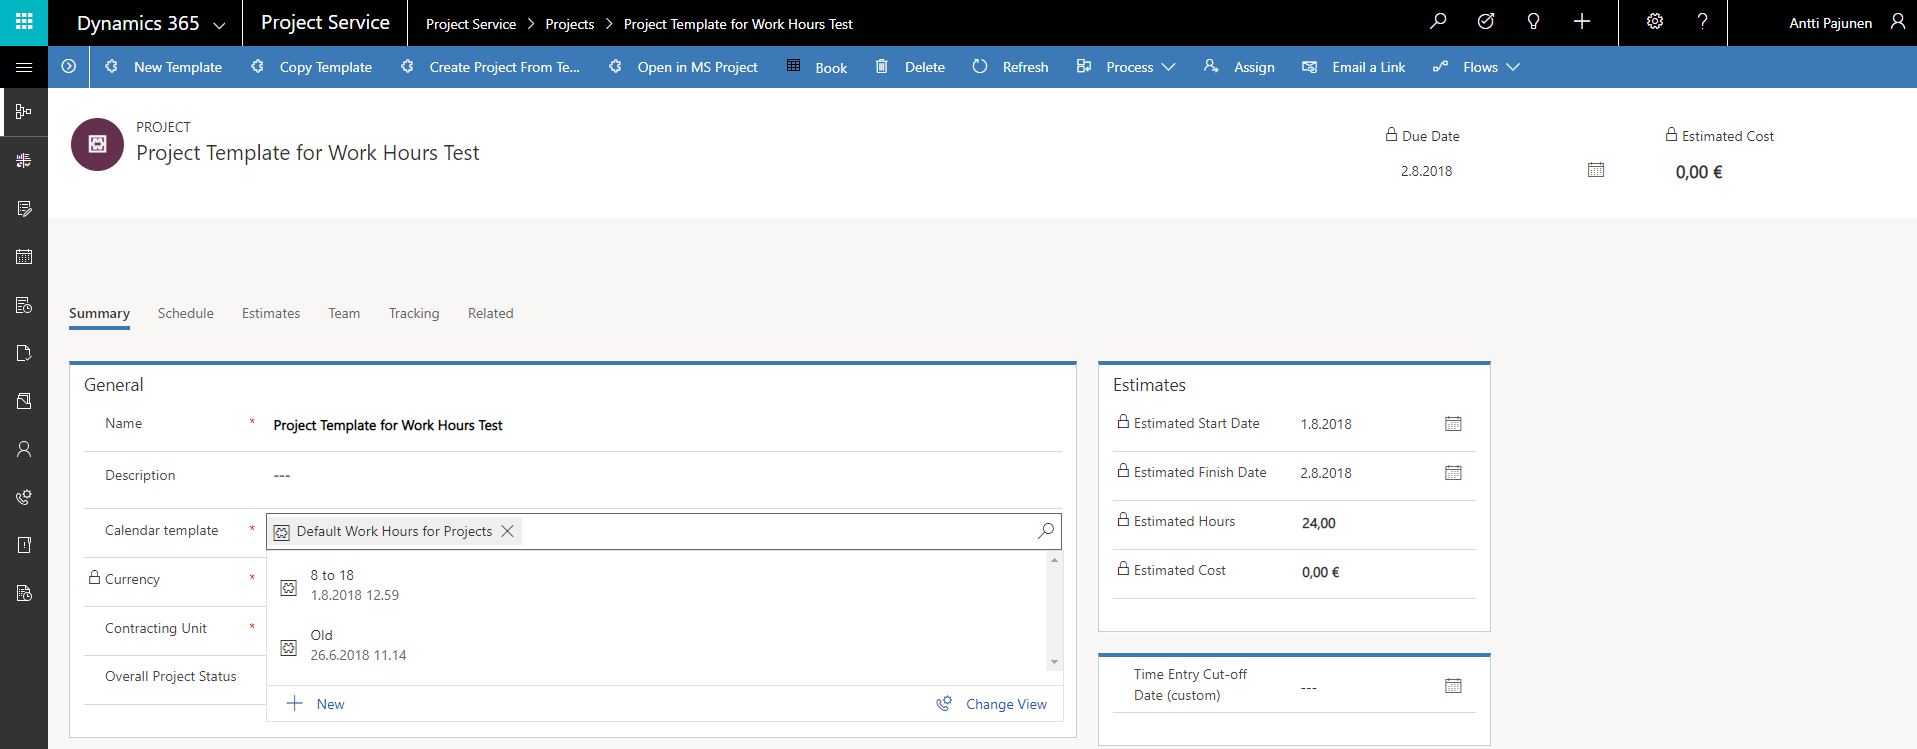 Dynamics 365 Project Service Automation Setting A New Template